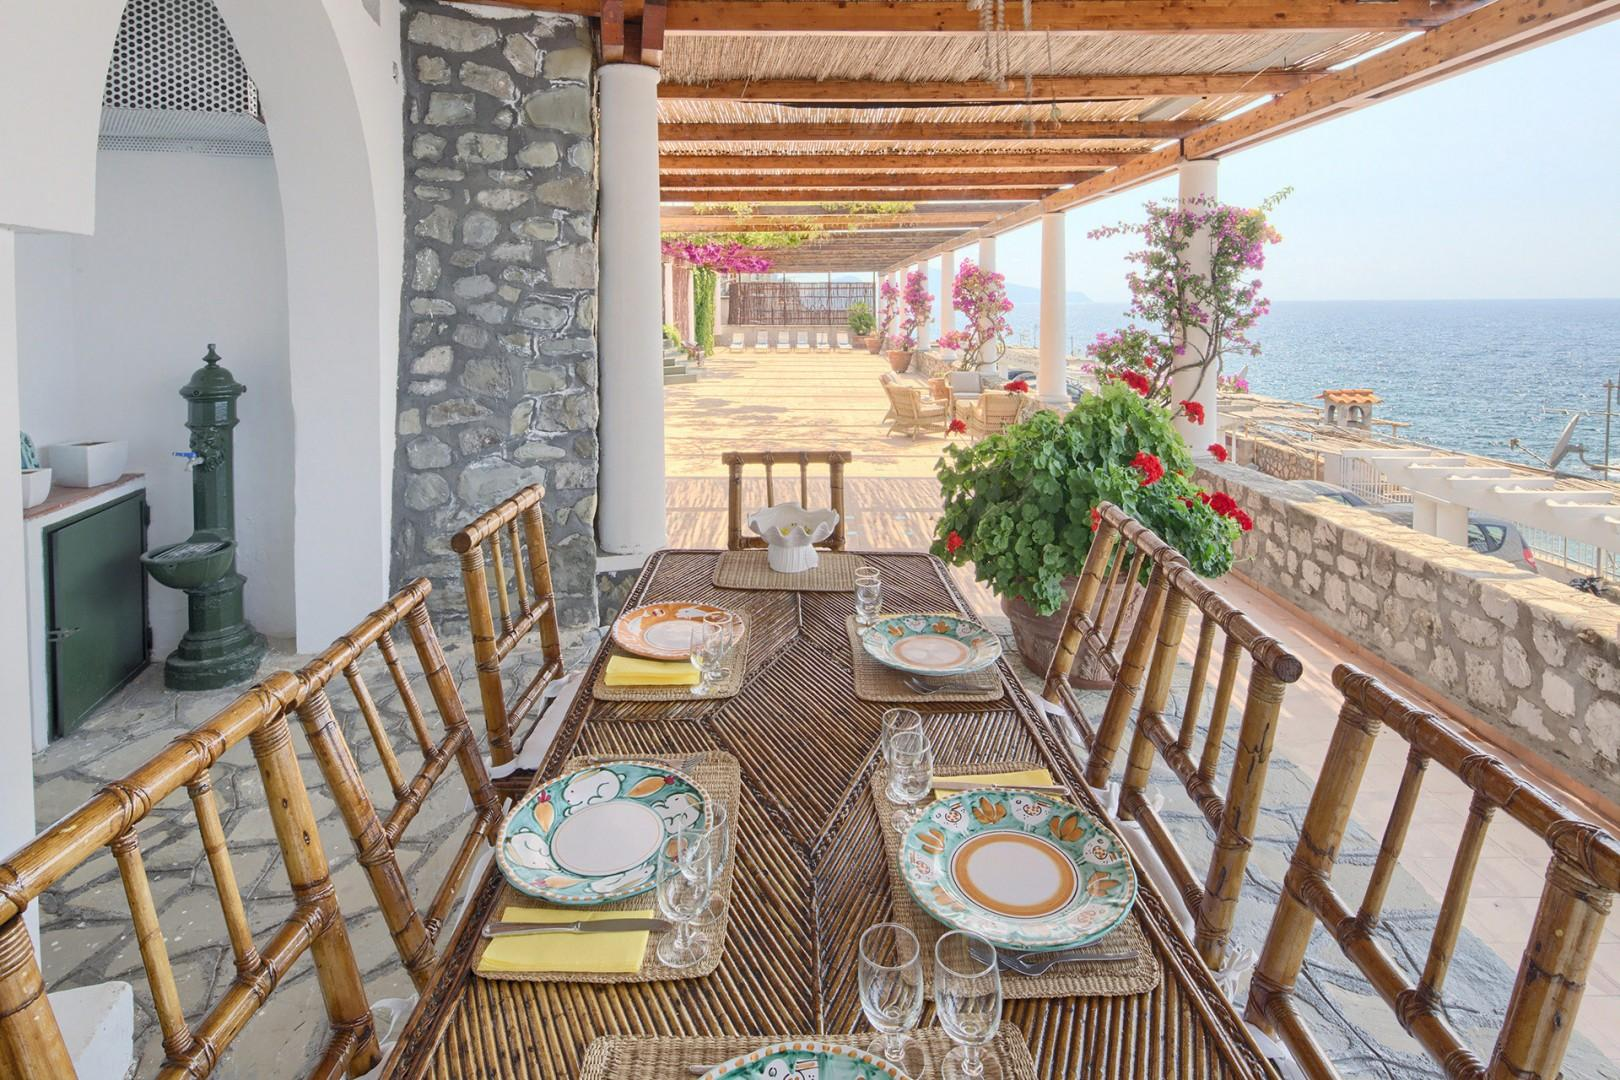 The outdoor dining room has a roof for comfort and shade on the hottest days.